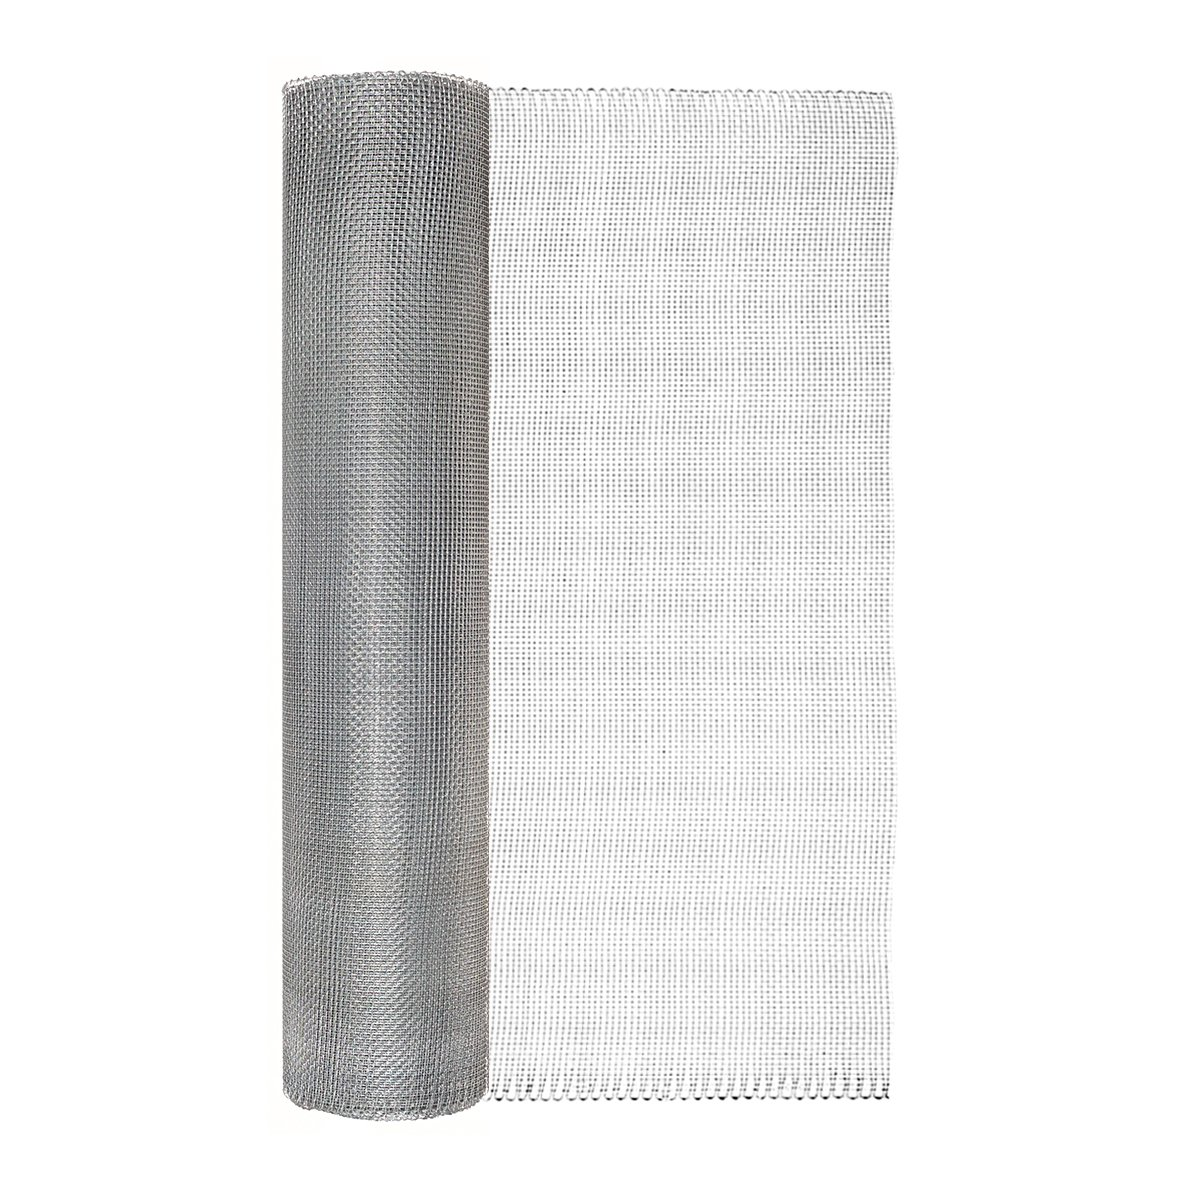 Garden Zone 24 Inches x 50 Feet - 1/8-Inch Openings - Galvanized Steel Wire Rolled Hardware Cloth - For Fencing Around Chicken Coop, Run, and Gardens by Garden Zone